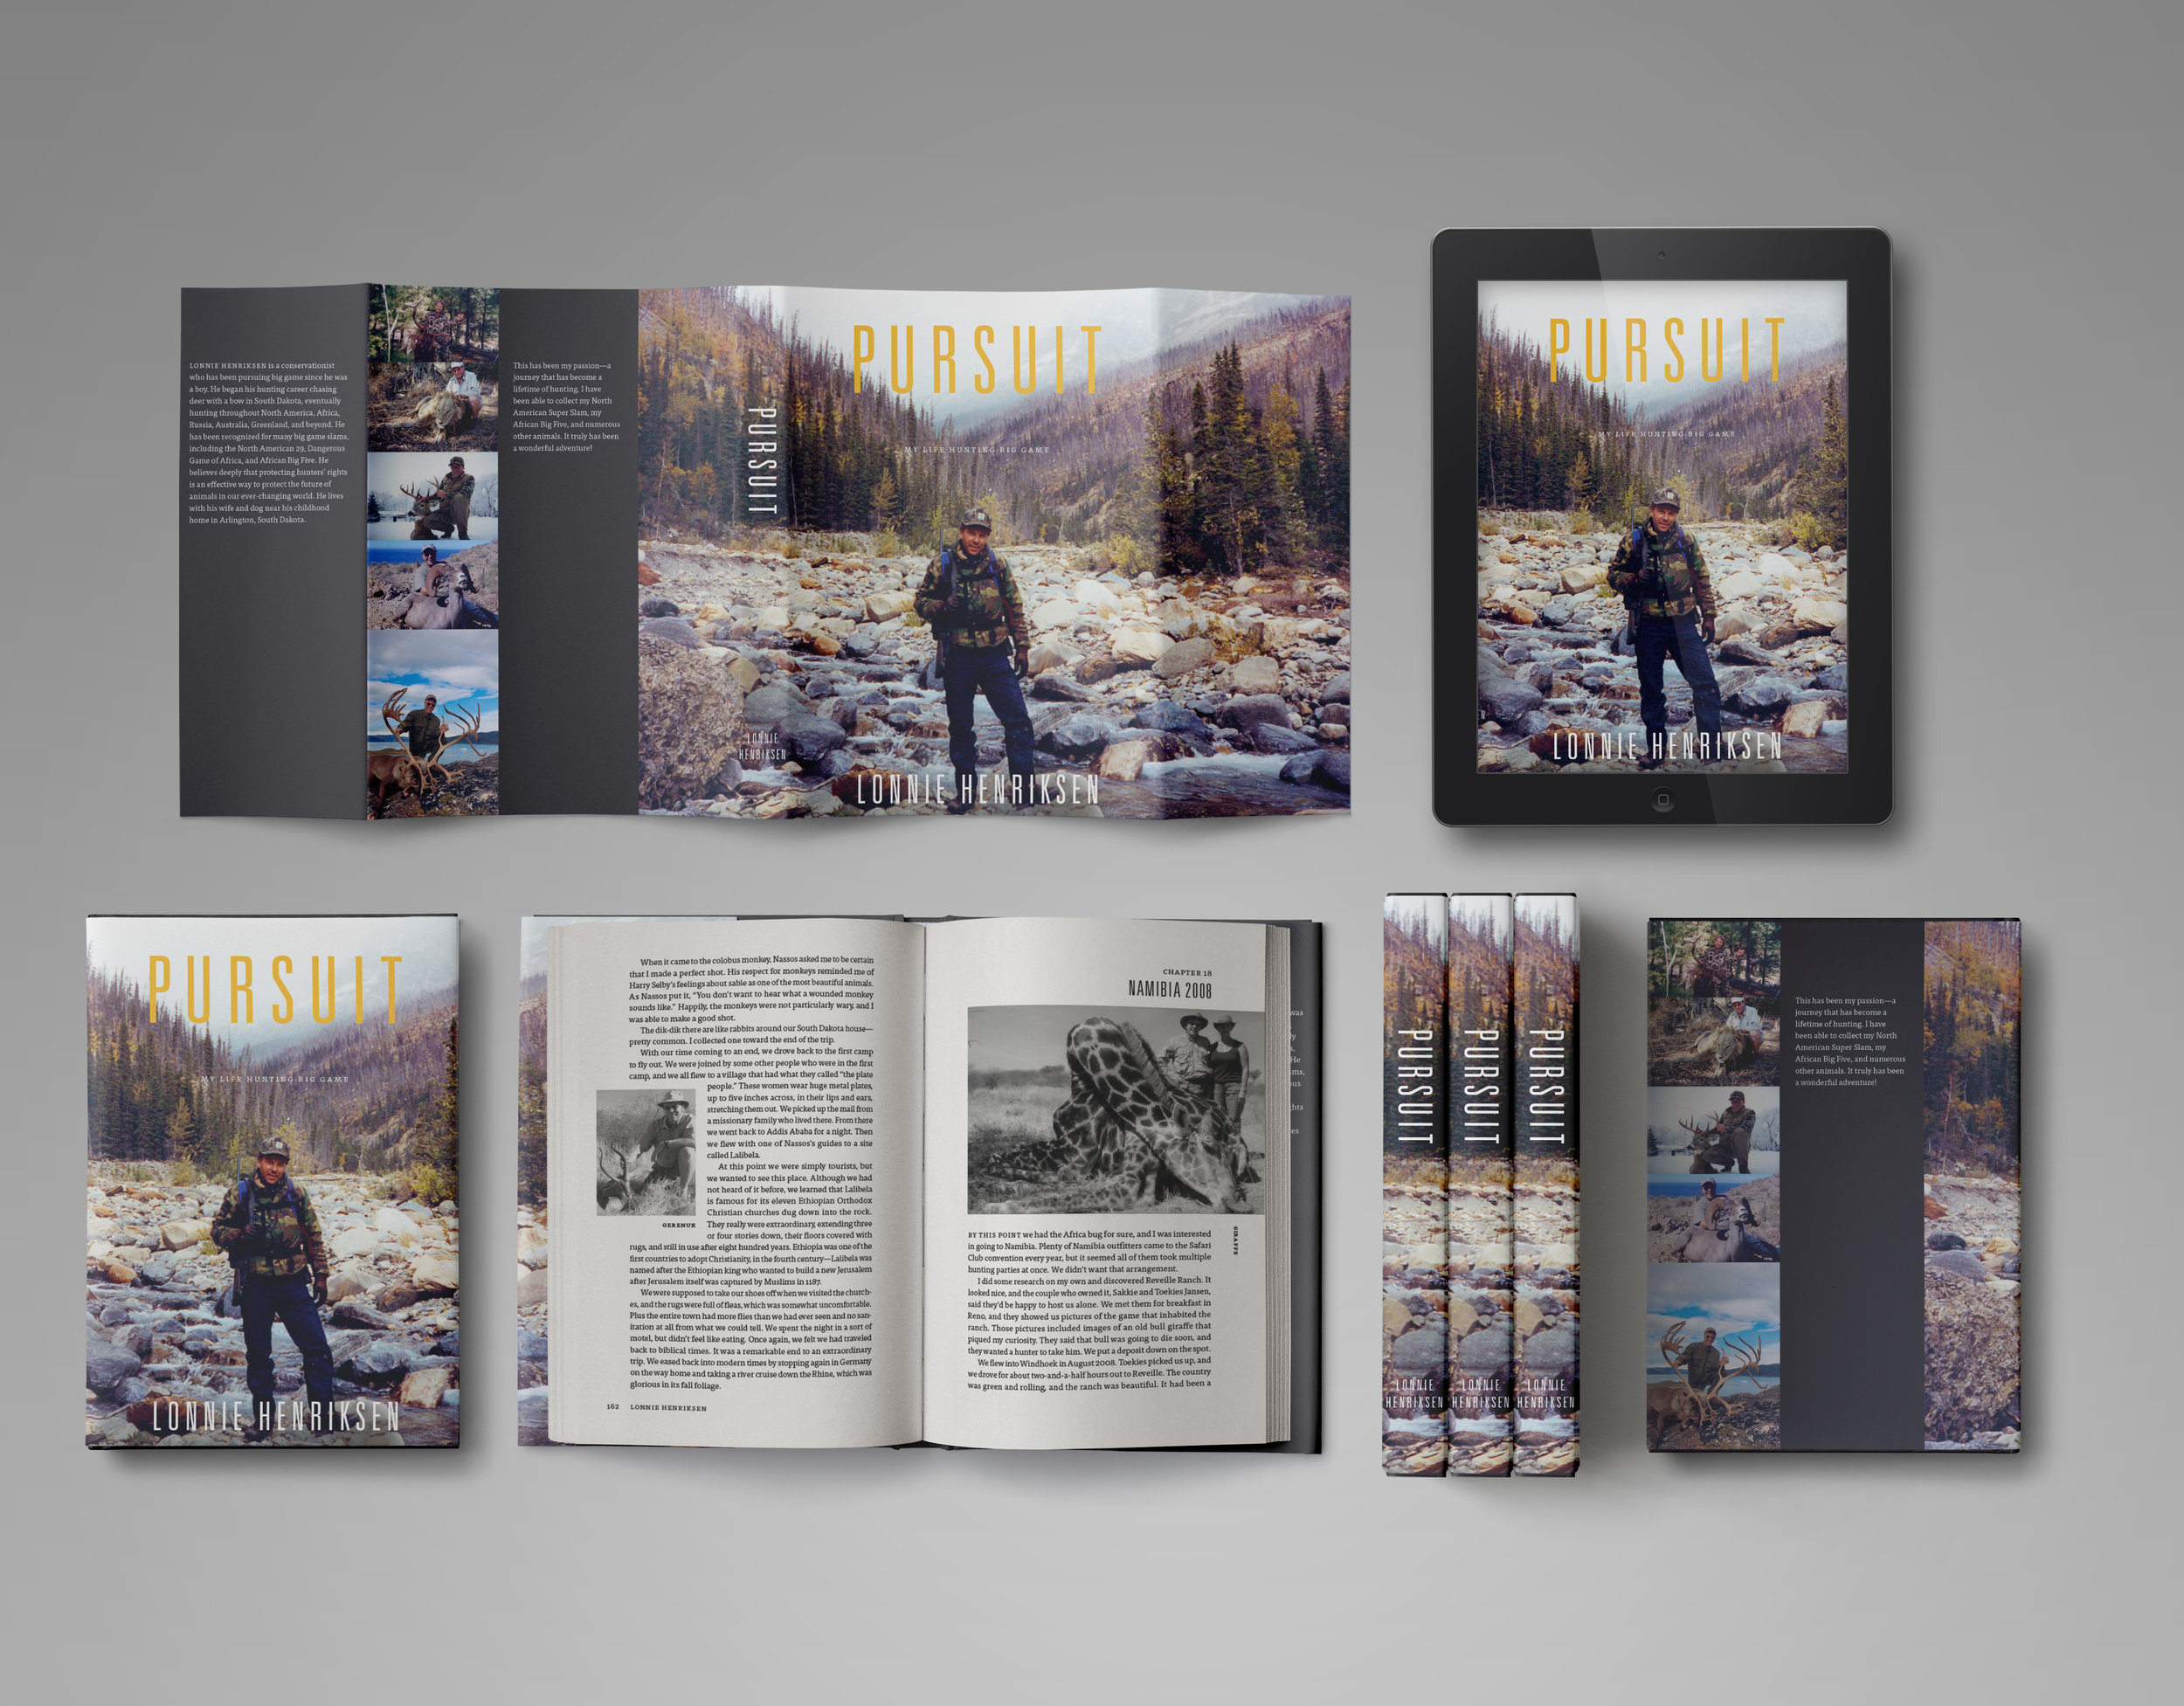 We worked with self-publishing author Lonnie Henricksen to include over 200 photos throughout his autobiography—something a traditional publisher likely would have prevented due to production costs.